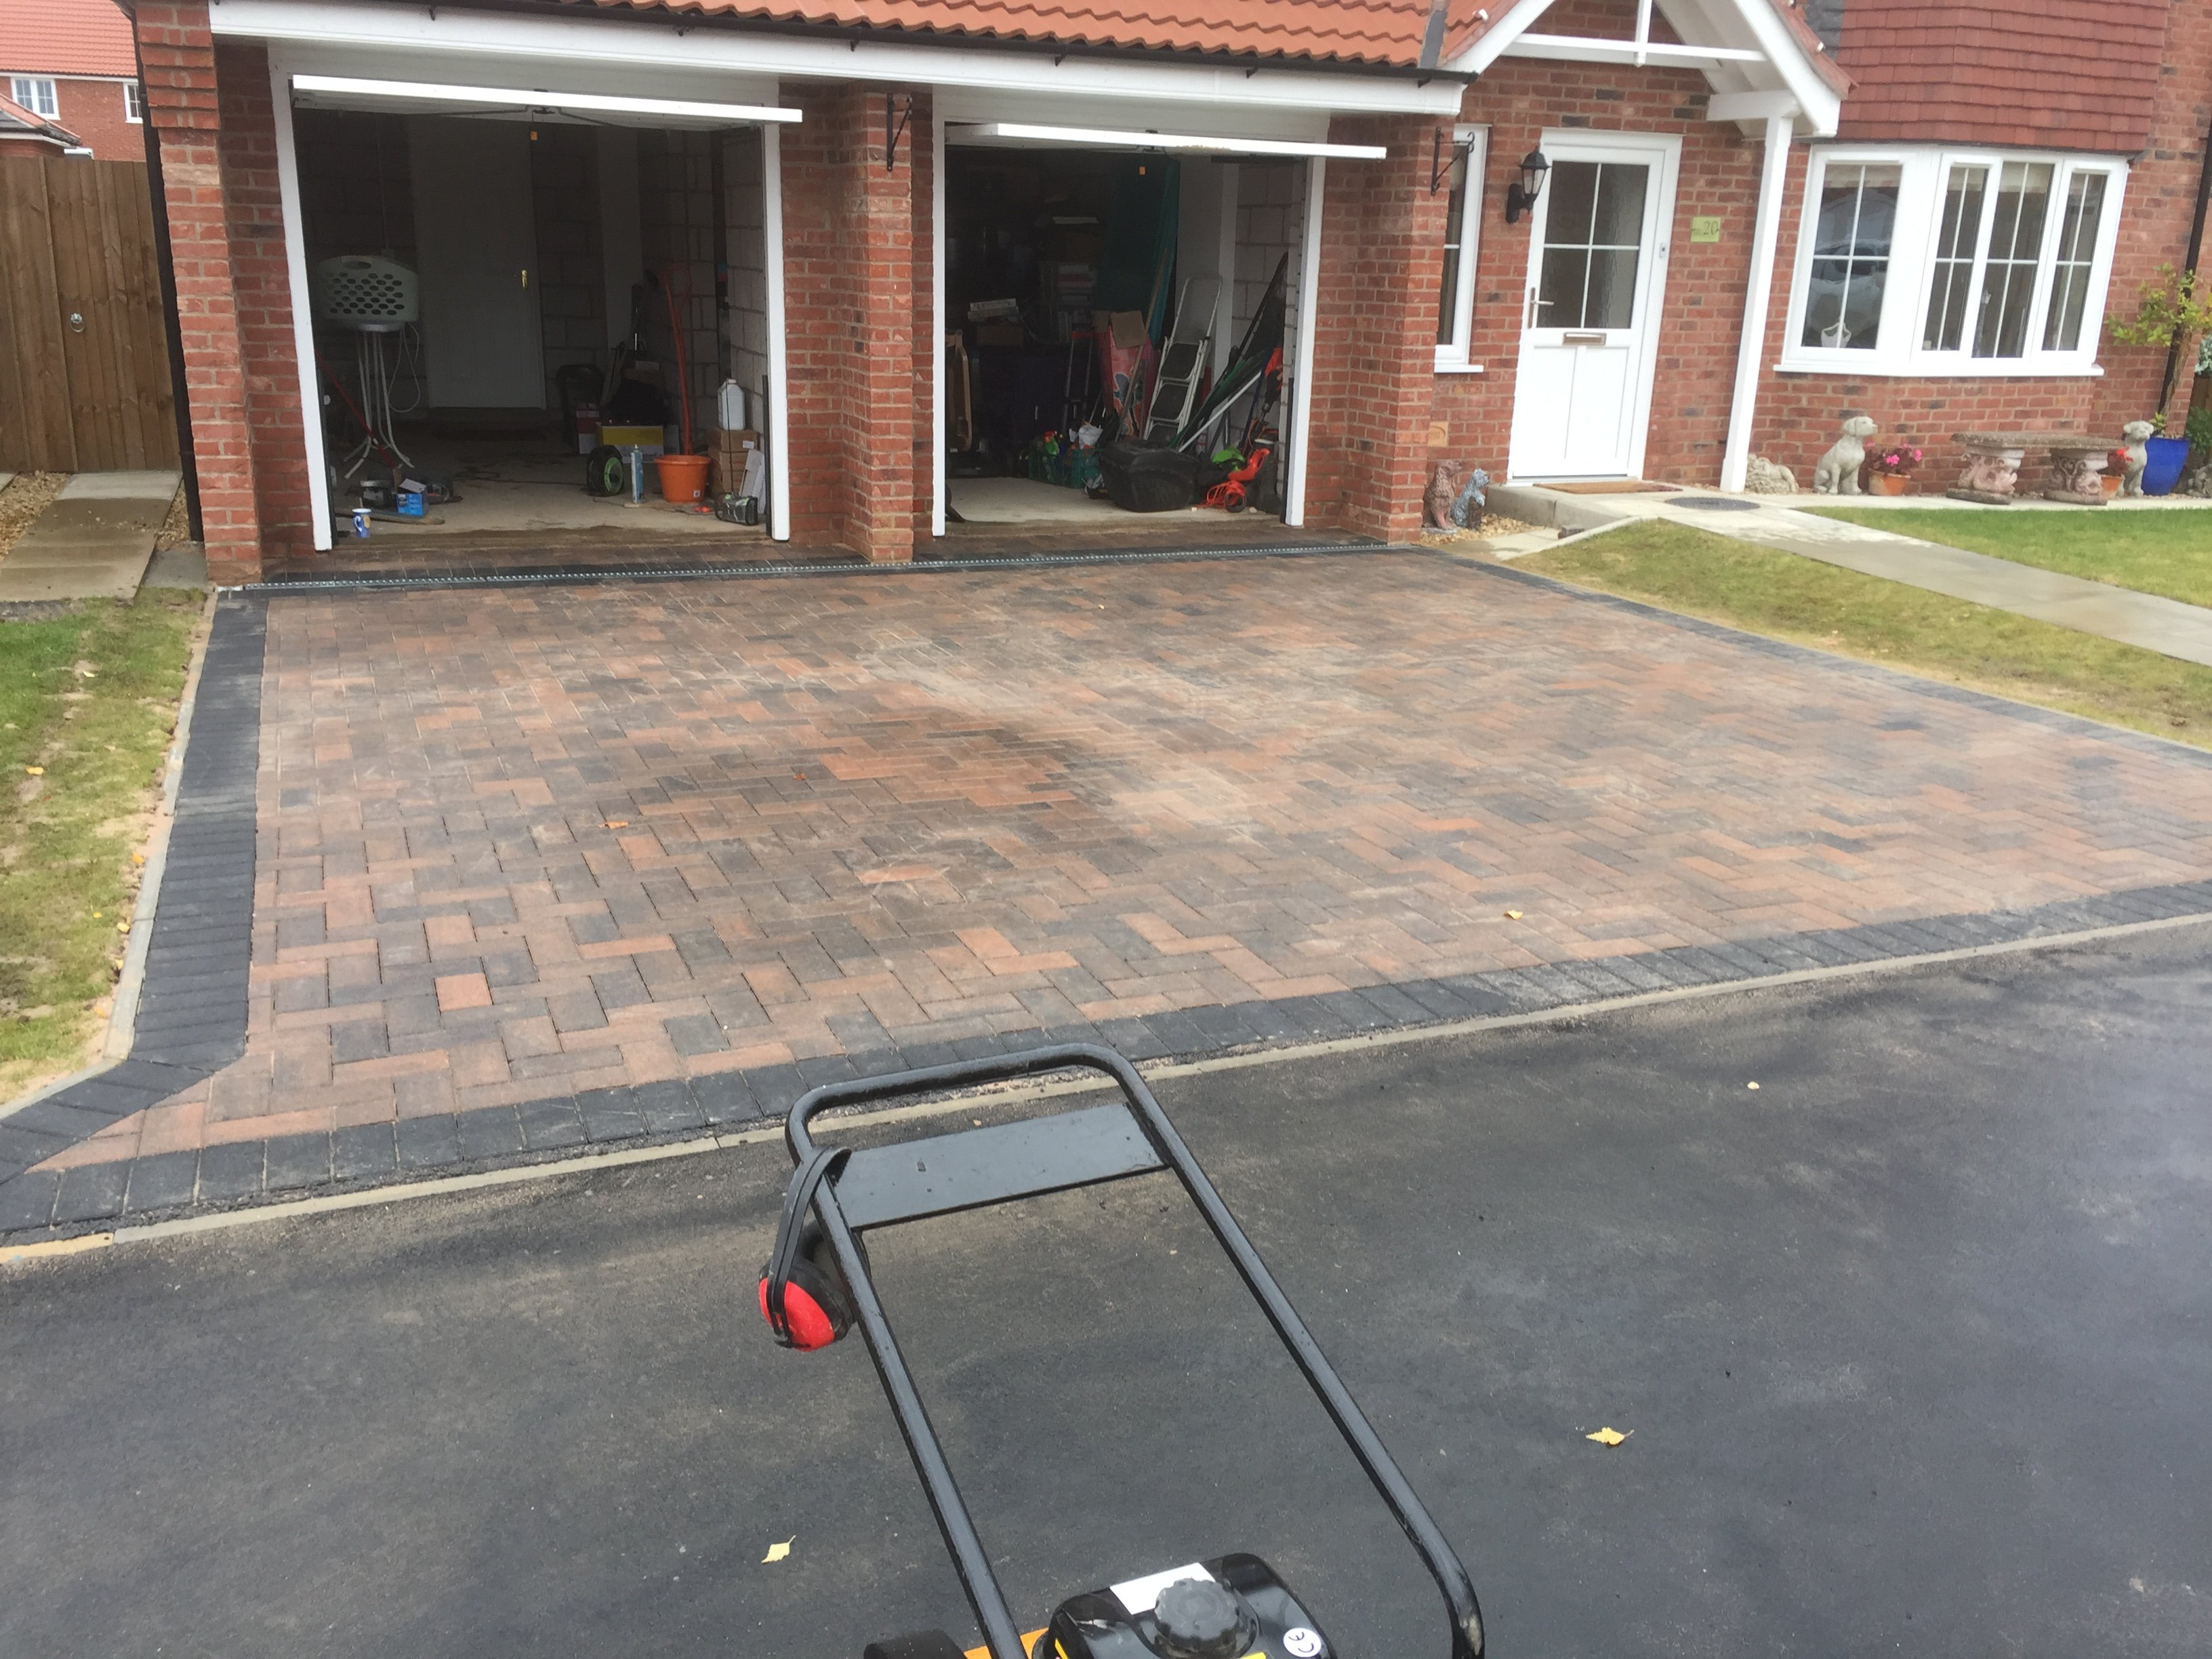 Driveways J foster property Maintenance